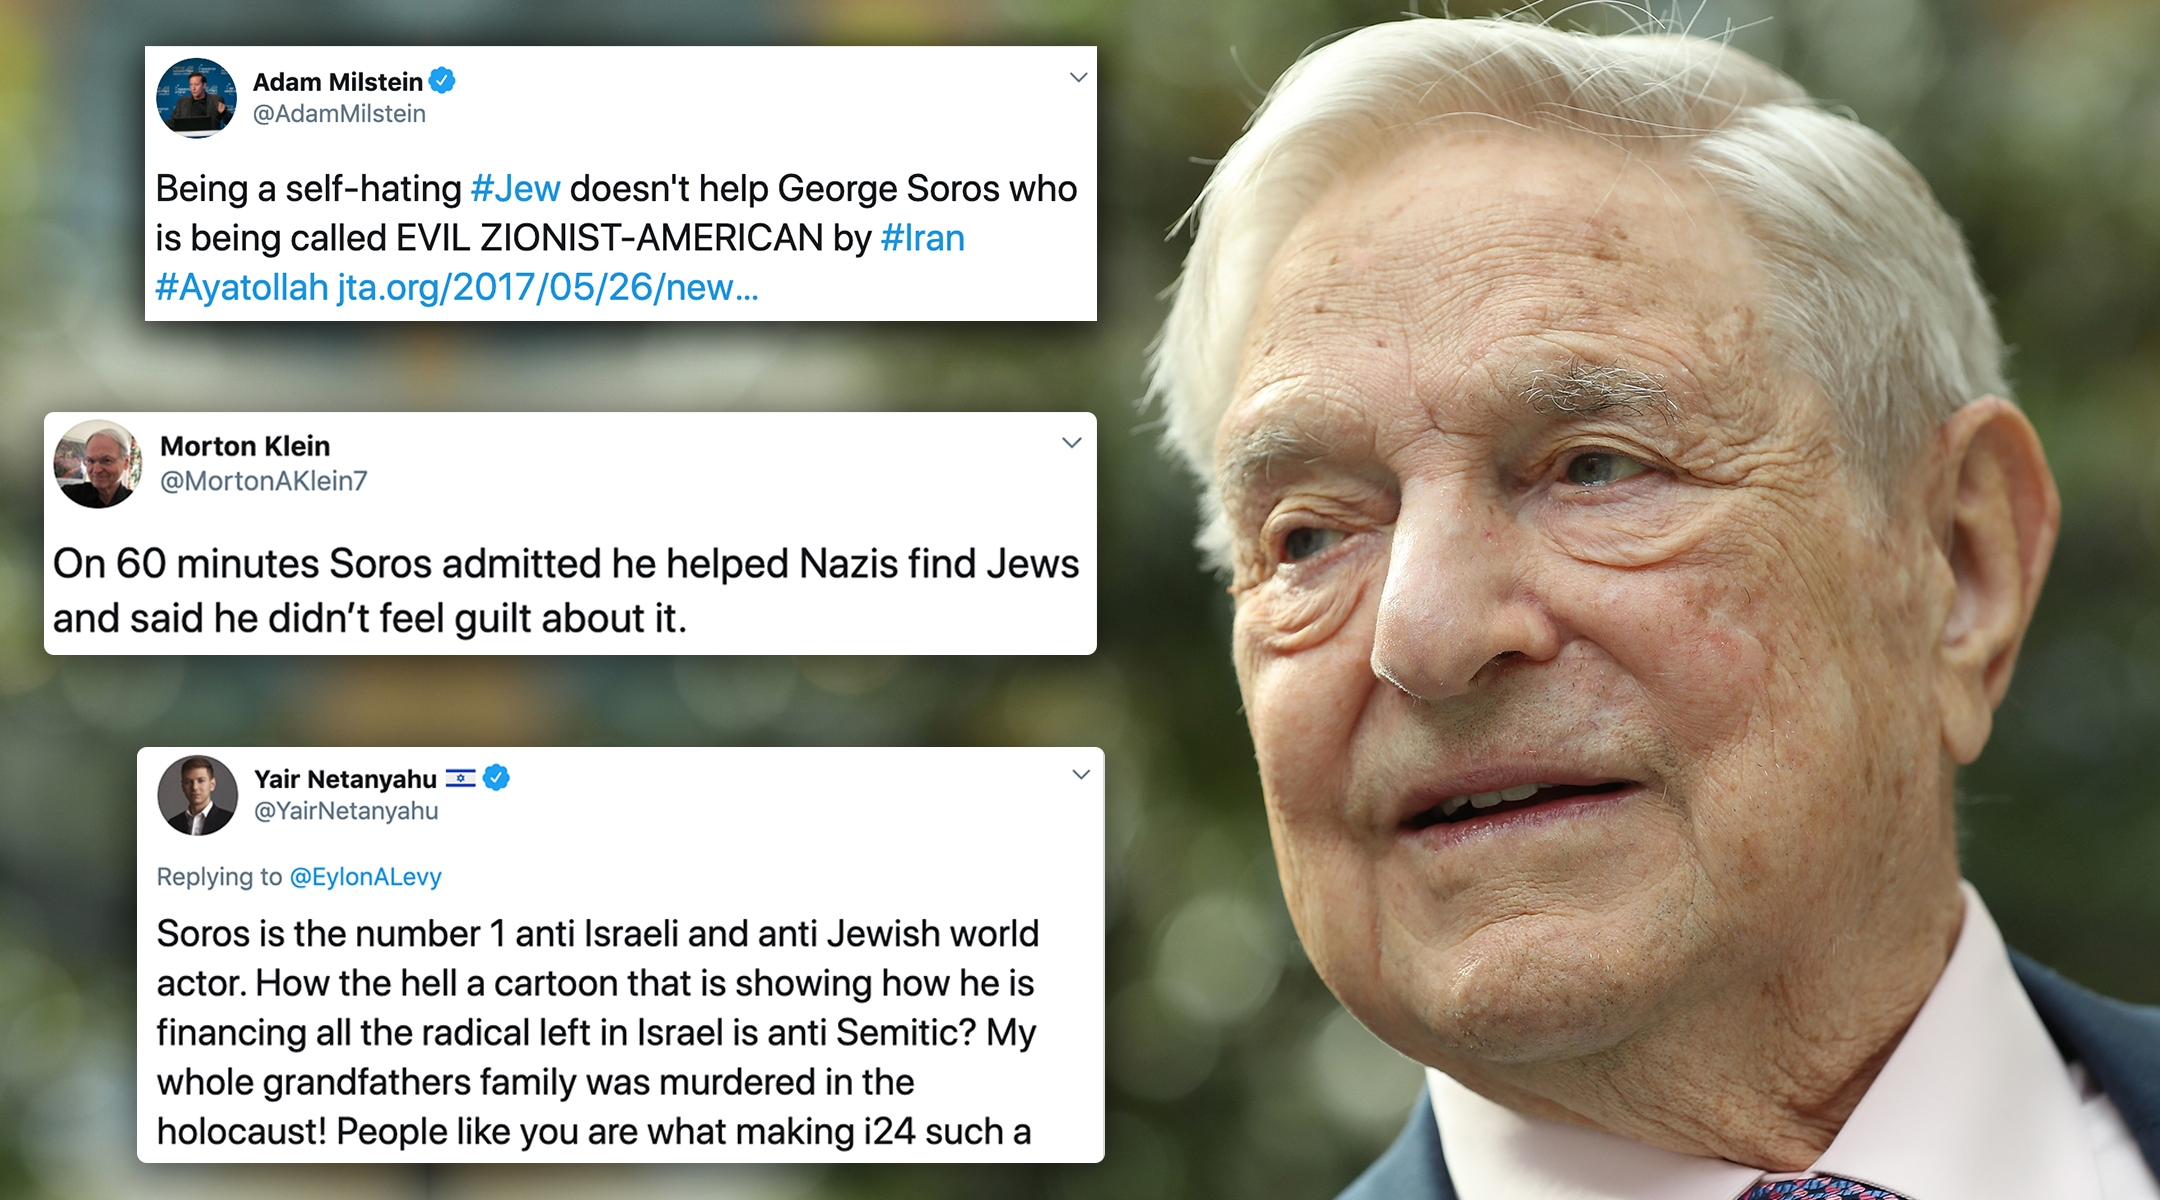 George Soros, the Jewish-American financier and liberal philanthropist, has been attacked by prominent right-wing Jews in addition to being a target of anti-Semites. (Photo credit: Sean Gallup/Getty Images. Photo illustration: Laura E. Adkins/JTA)